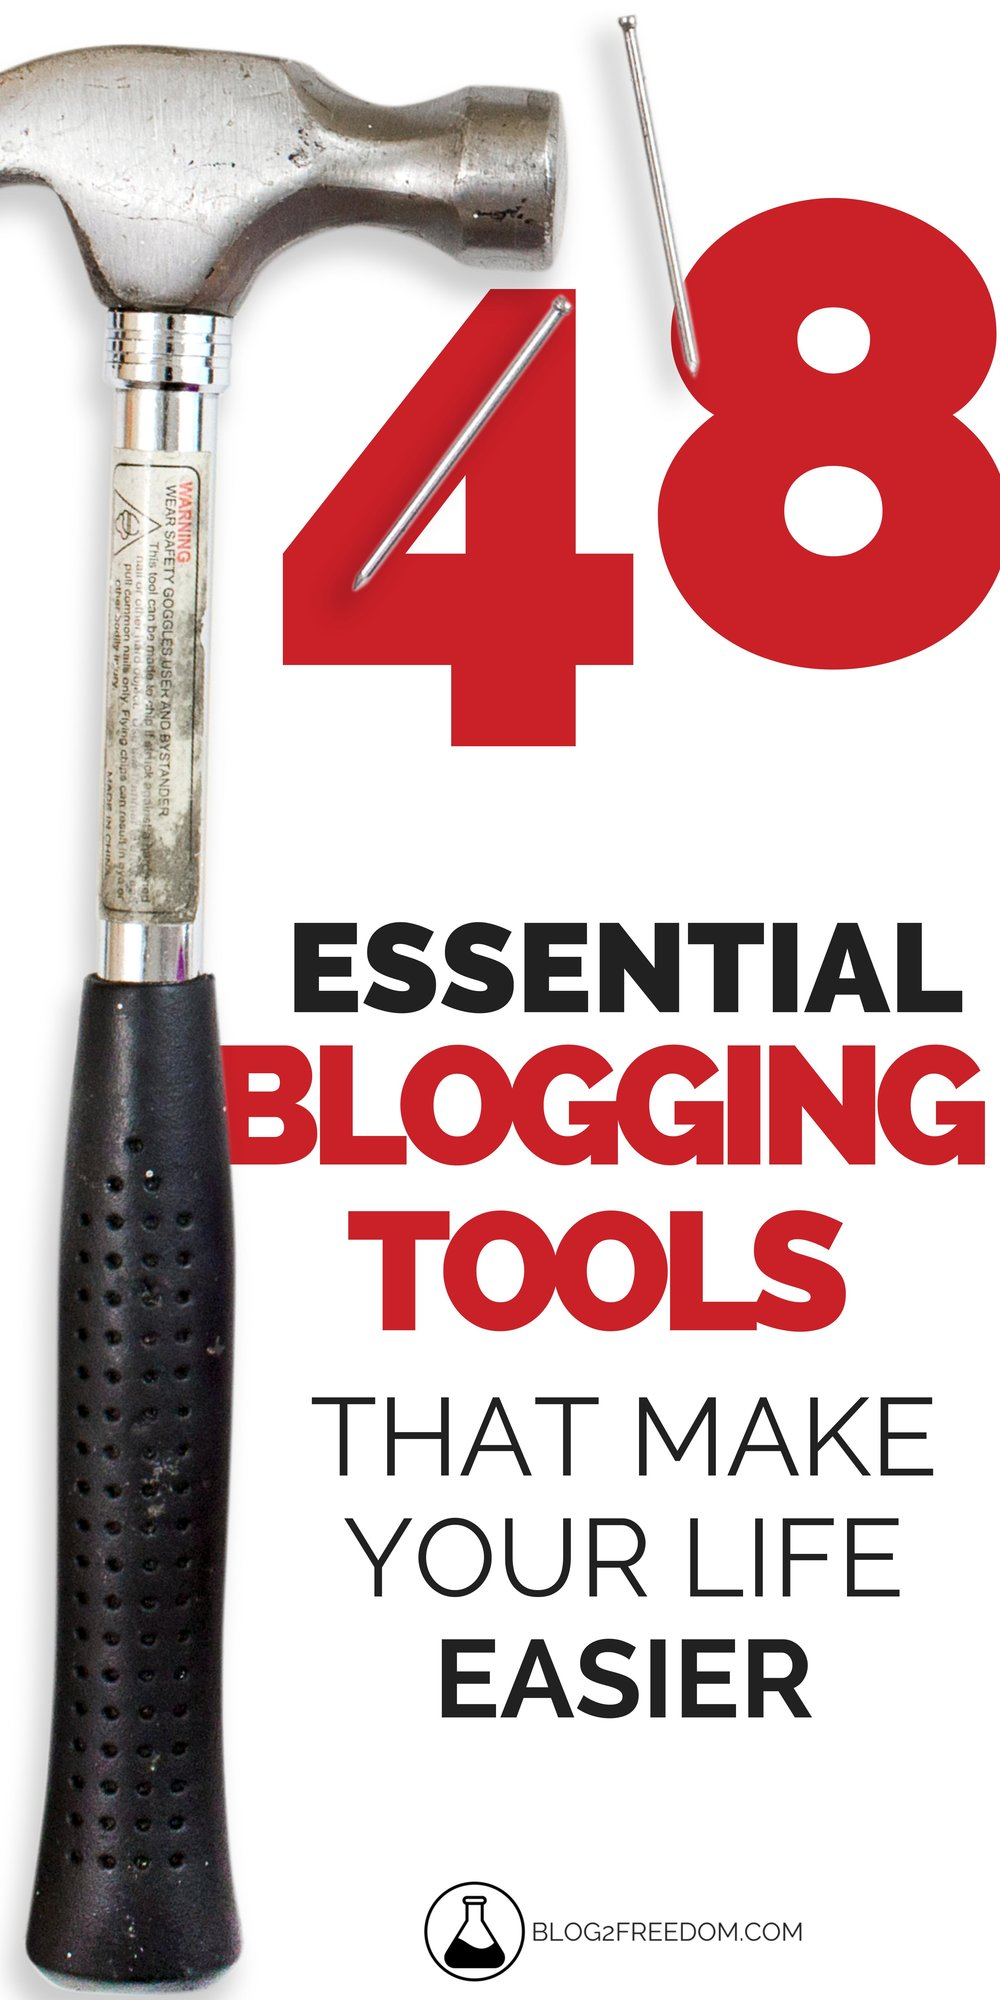 48 Essential blogging tools to make your life easier. These tools help you fight blogger overwhelm by taking some of the work off your plate!